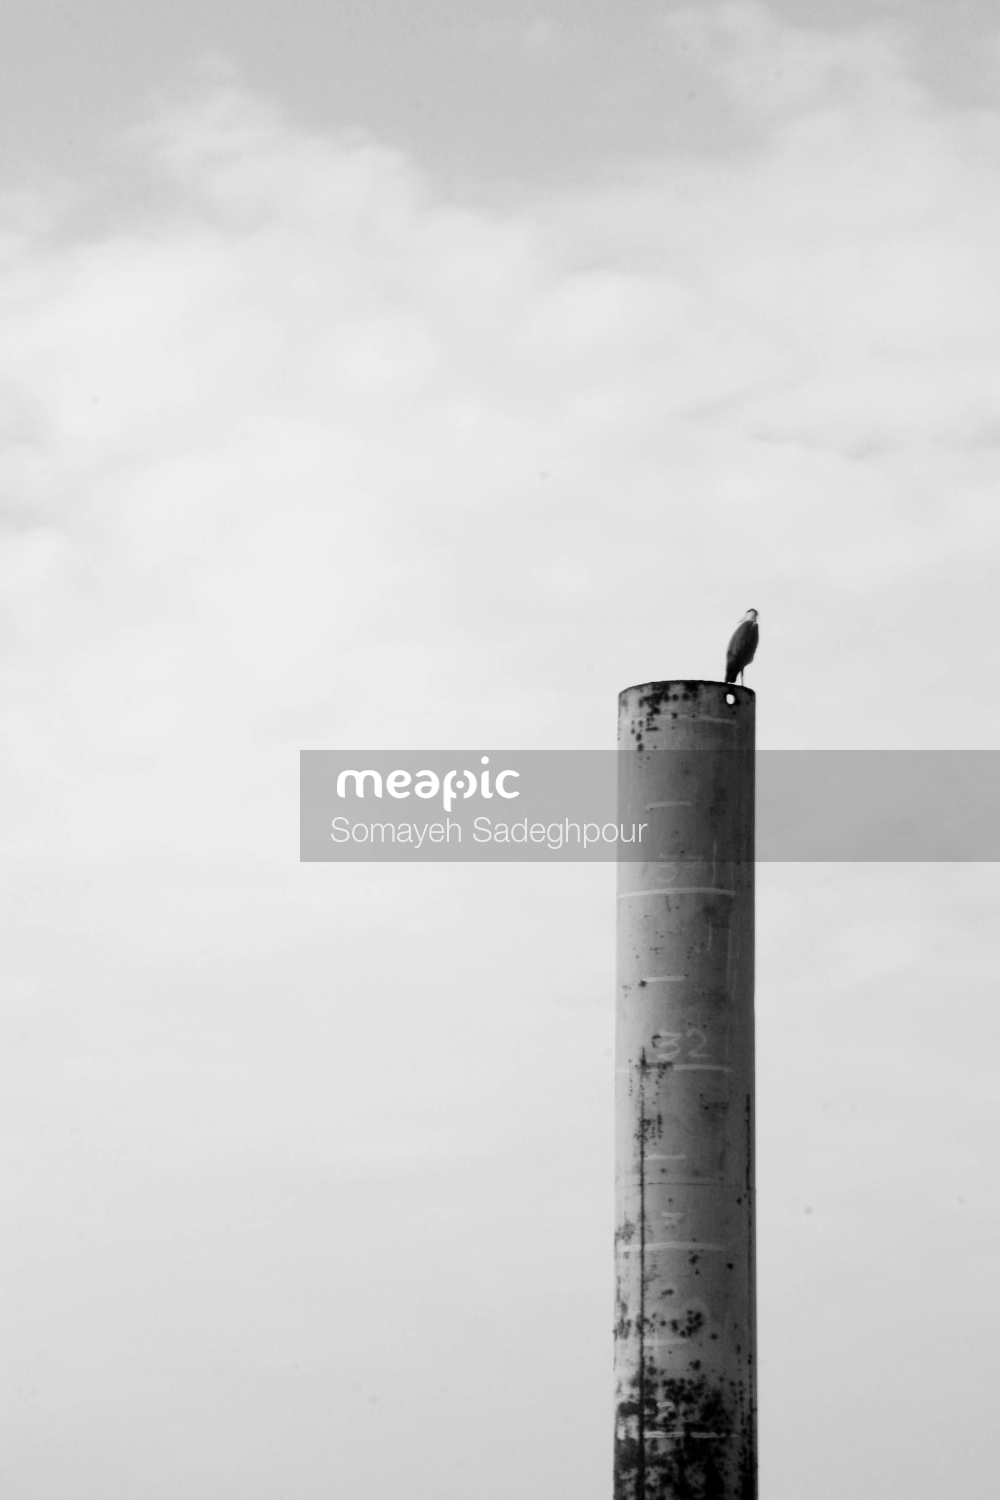 White And Black Tower On A Cloudy Day Stock Photo · Meapic